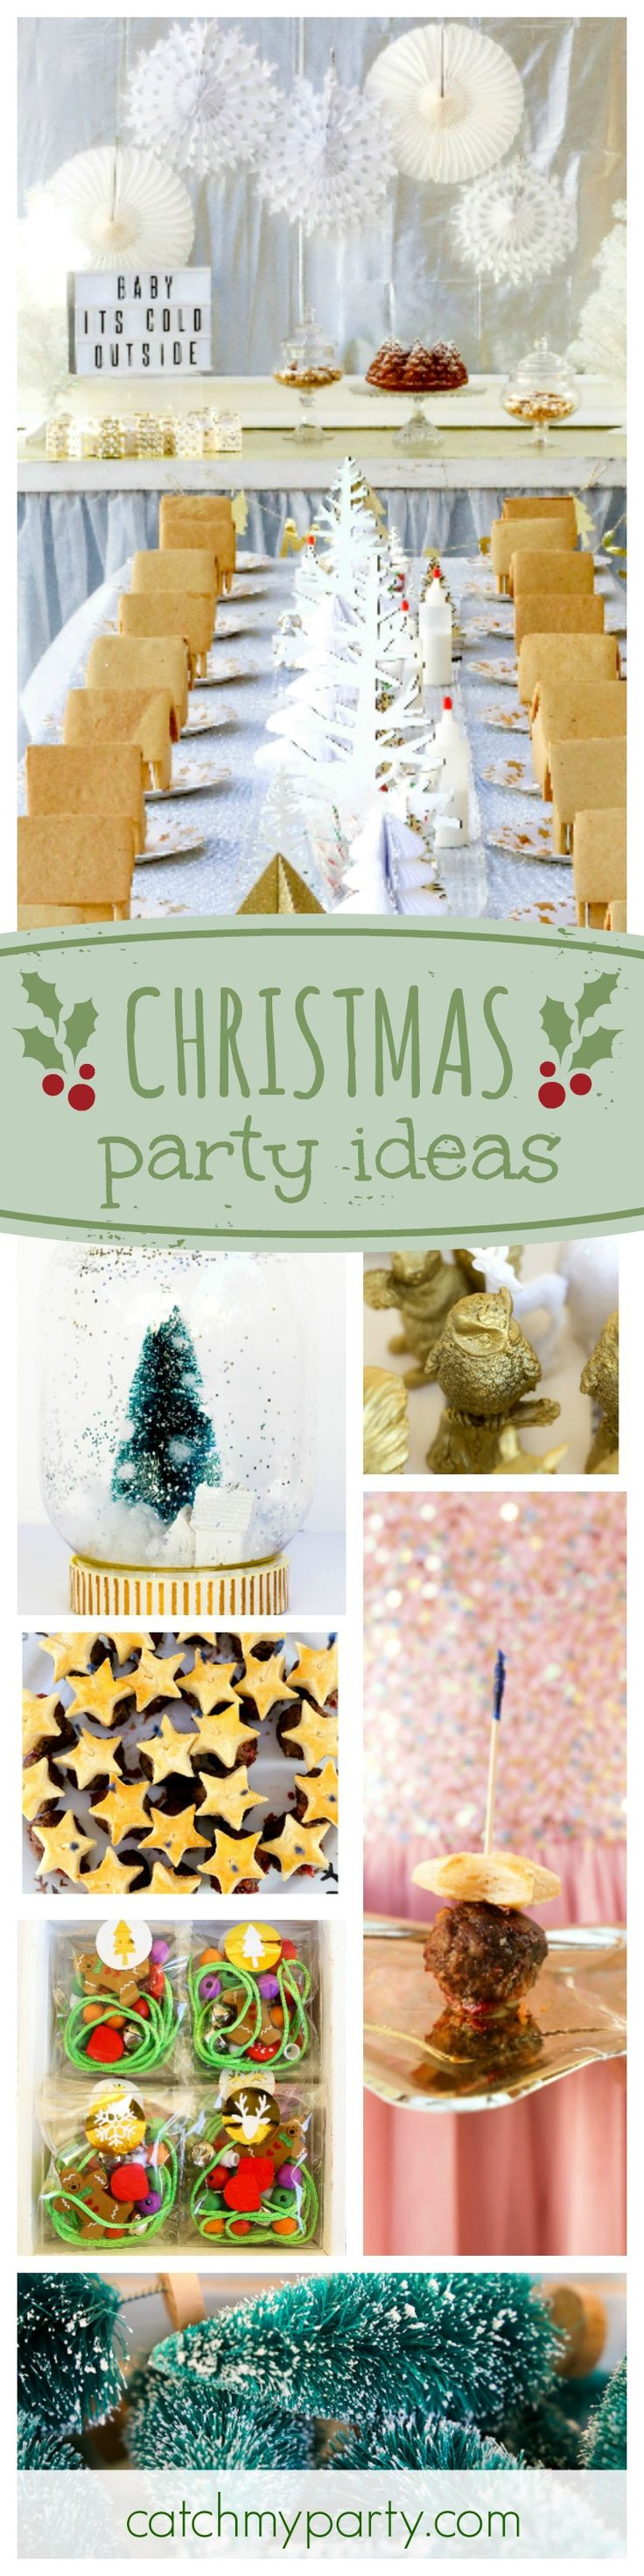 162 best Baking & Cooking Party Ideas images on Pinterest | Birthday ...